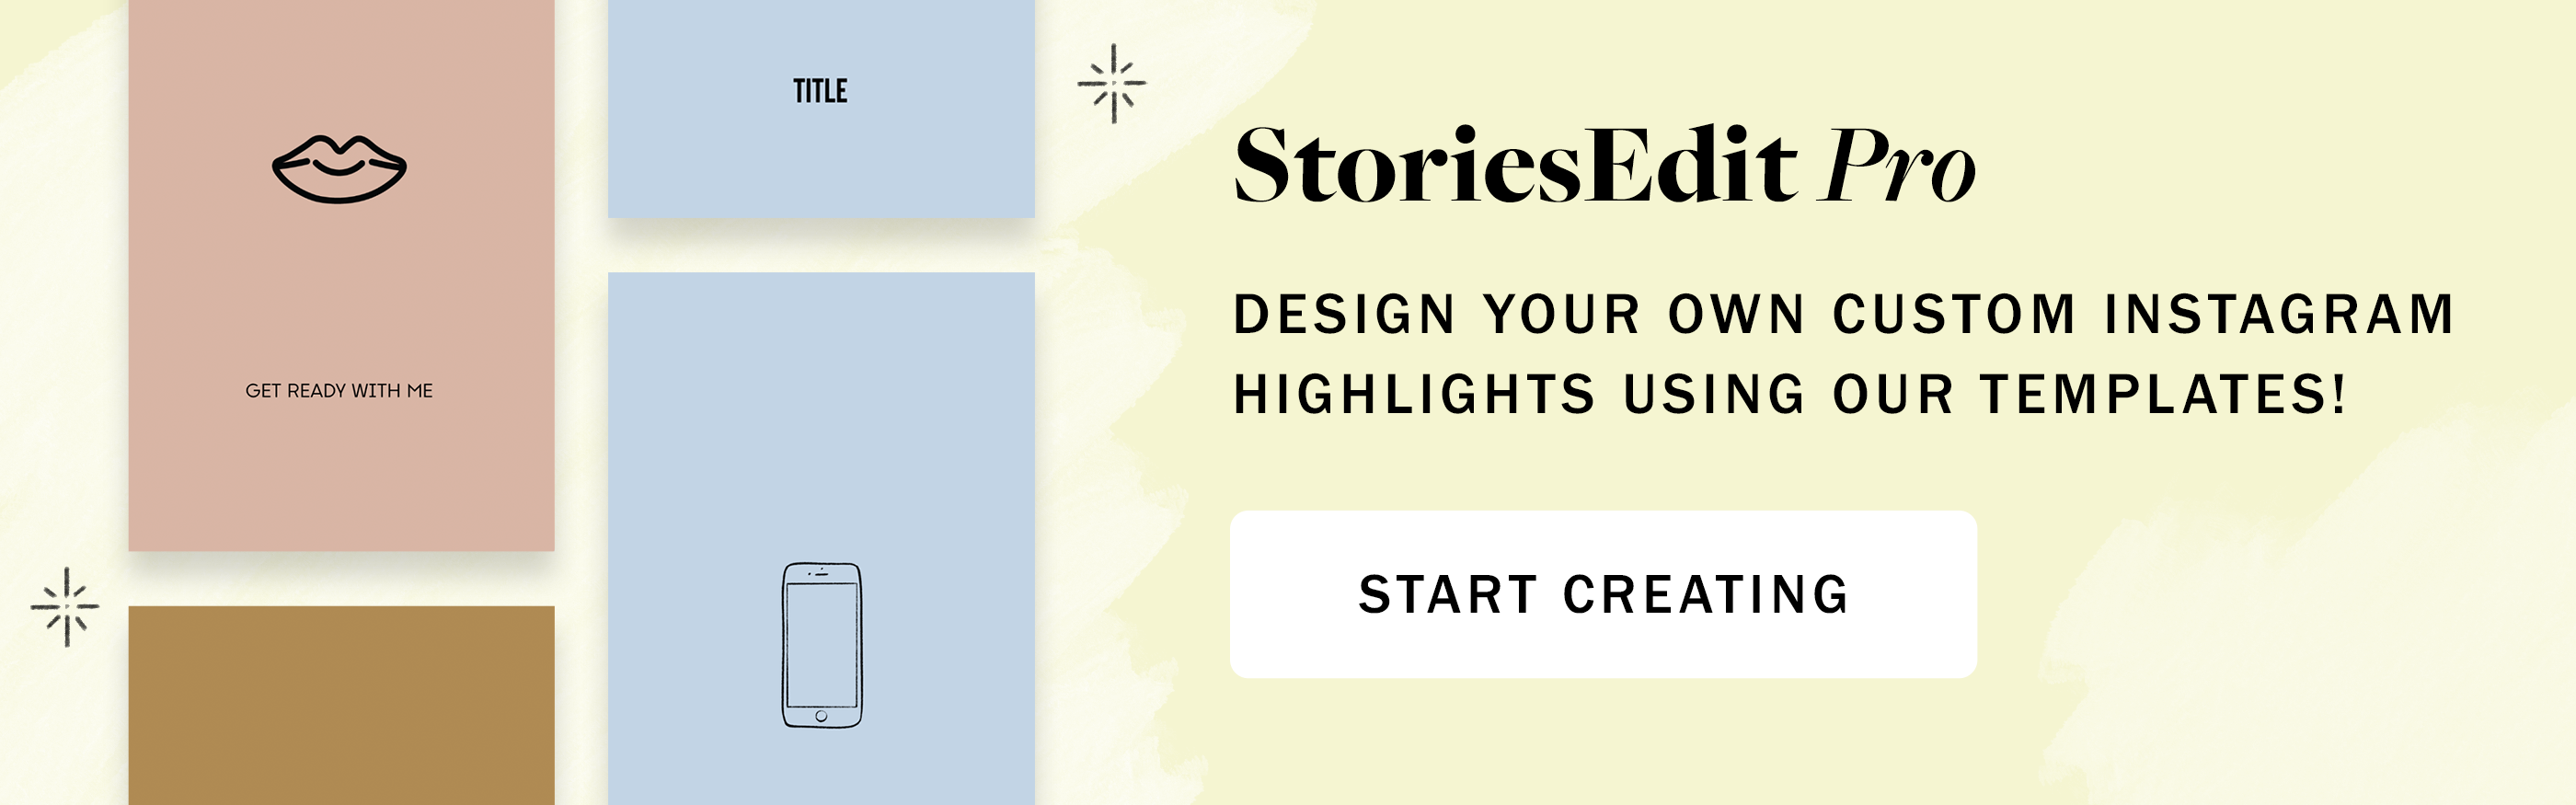 PLANOLY - Blog Post - How to Create Instagram Stories Highlights That Serve Your Customers - CTA Image